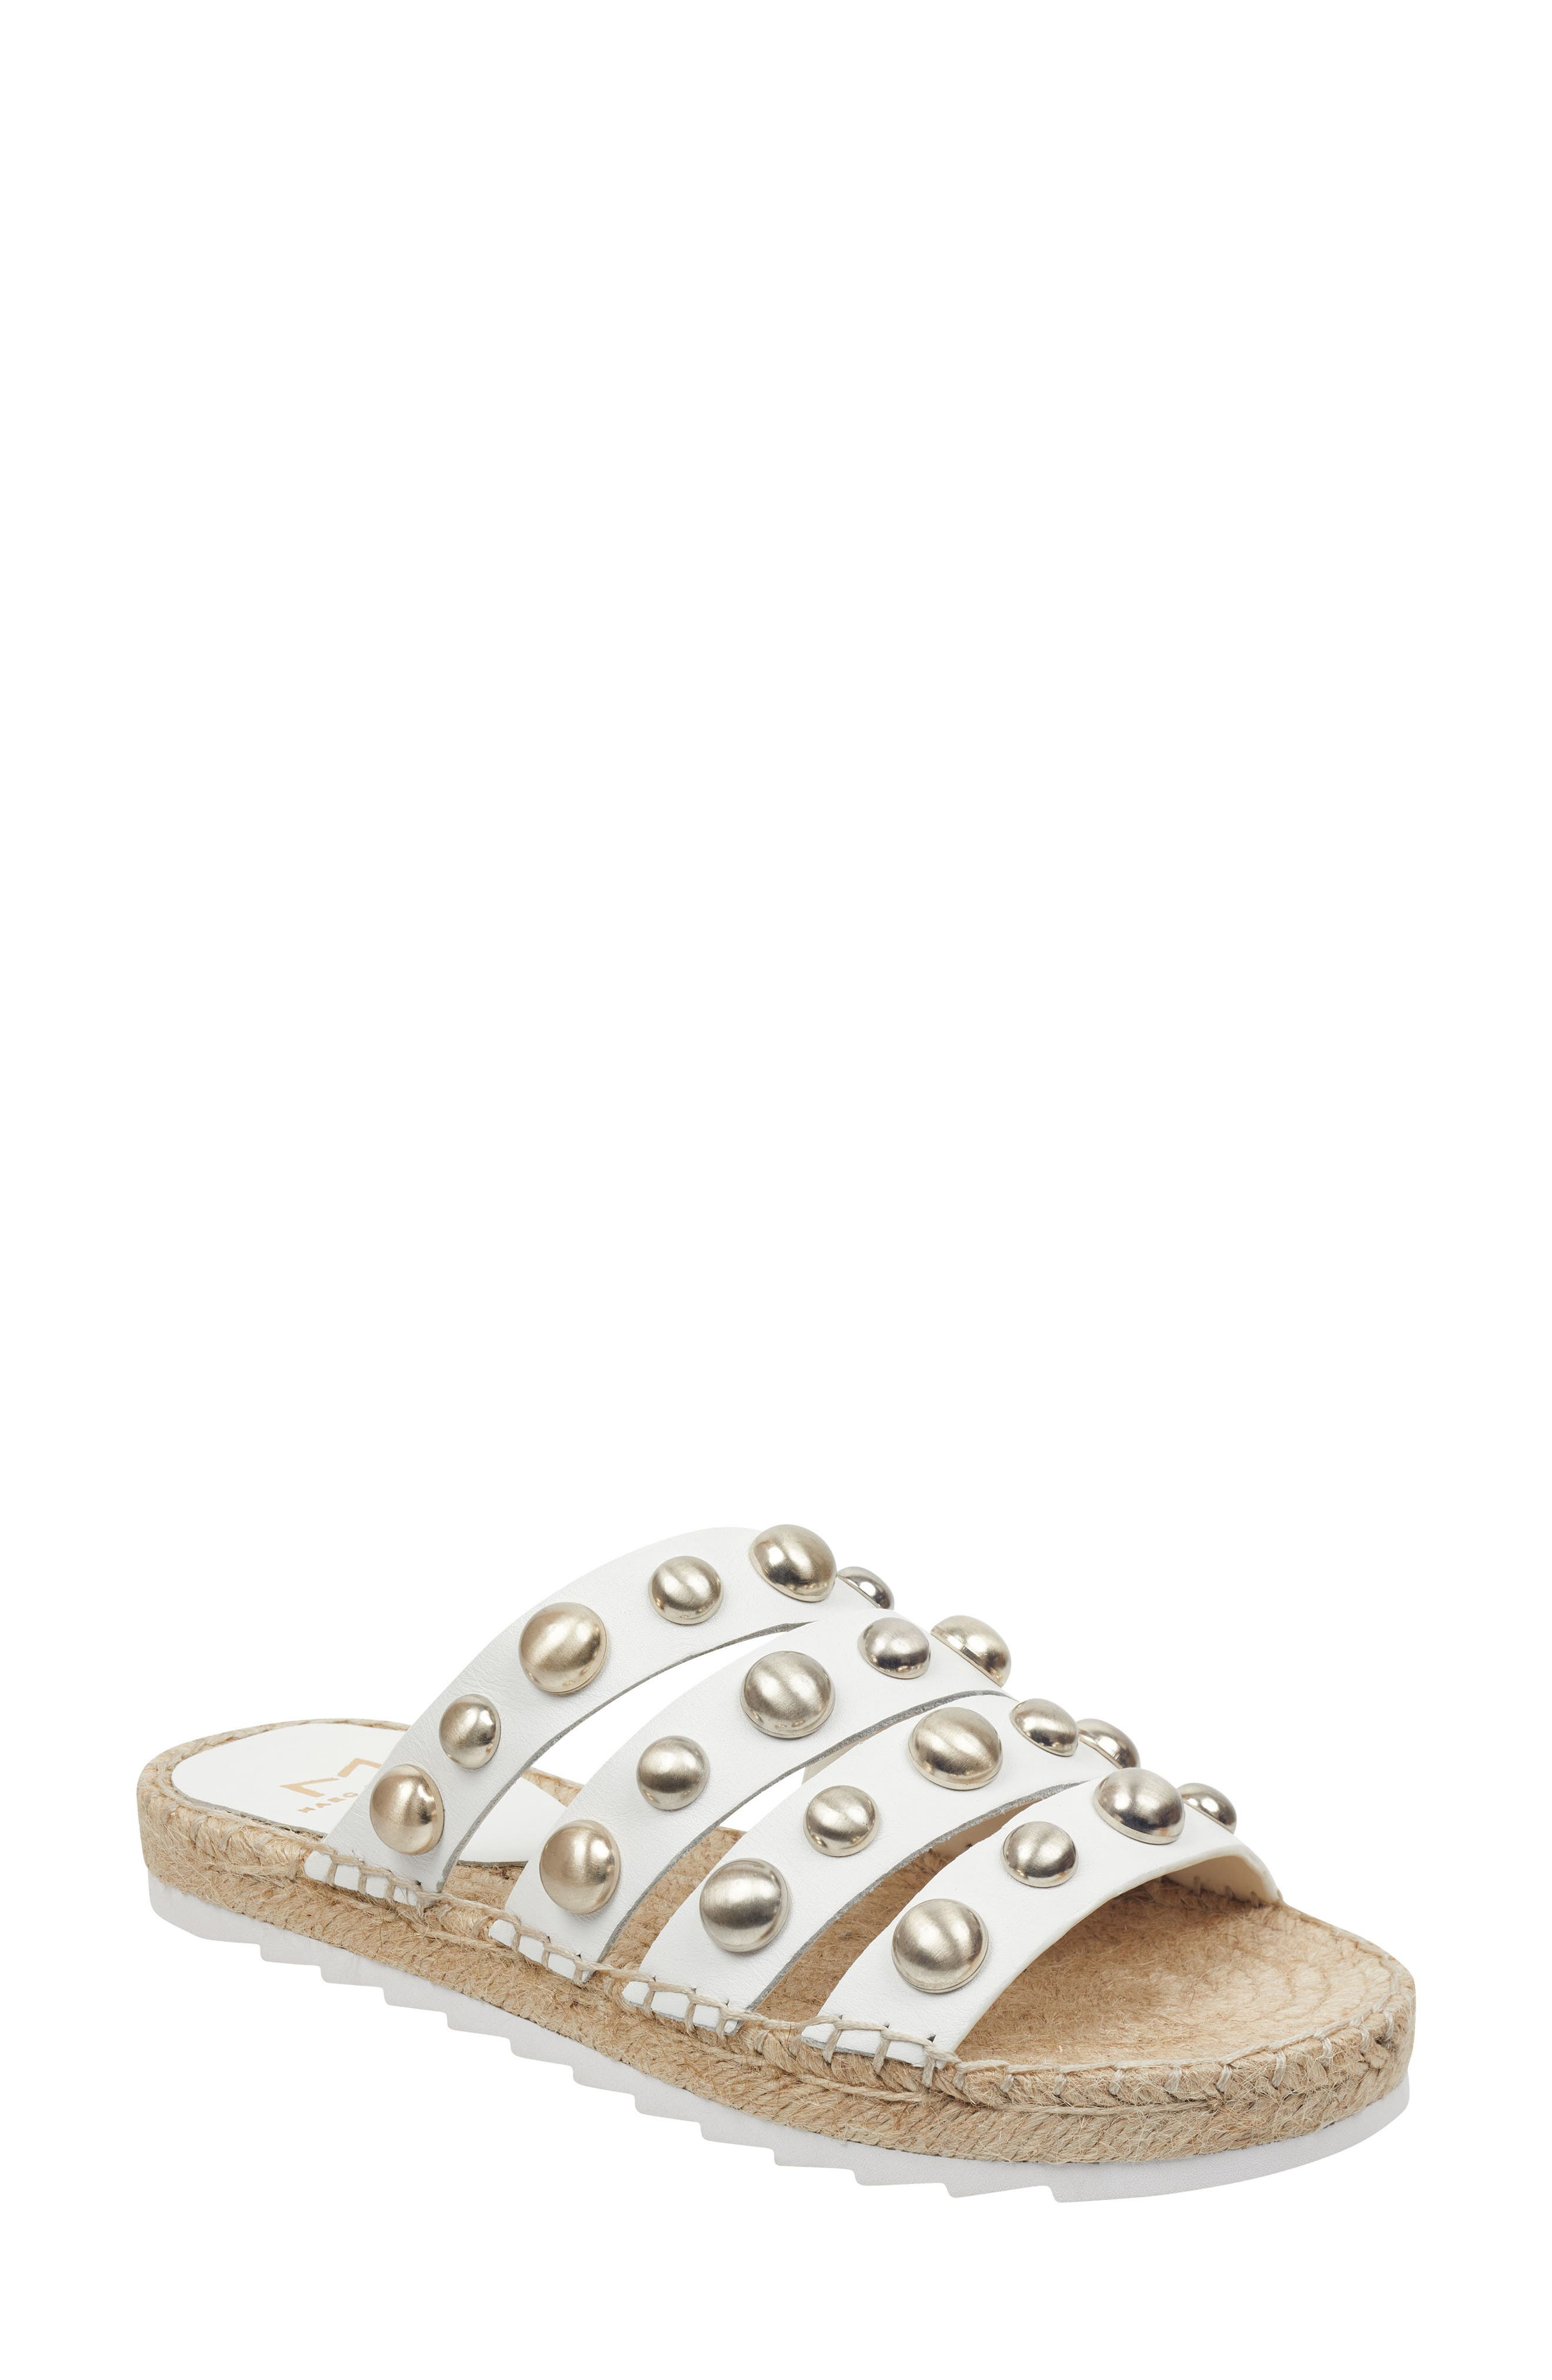 Marc Fisher Ltd Brandie Strappy Studded Slide Sandal, White